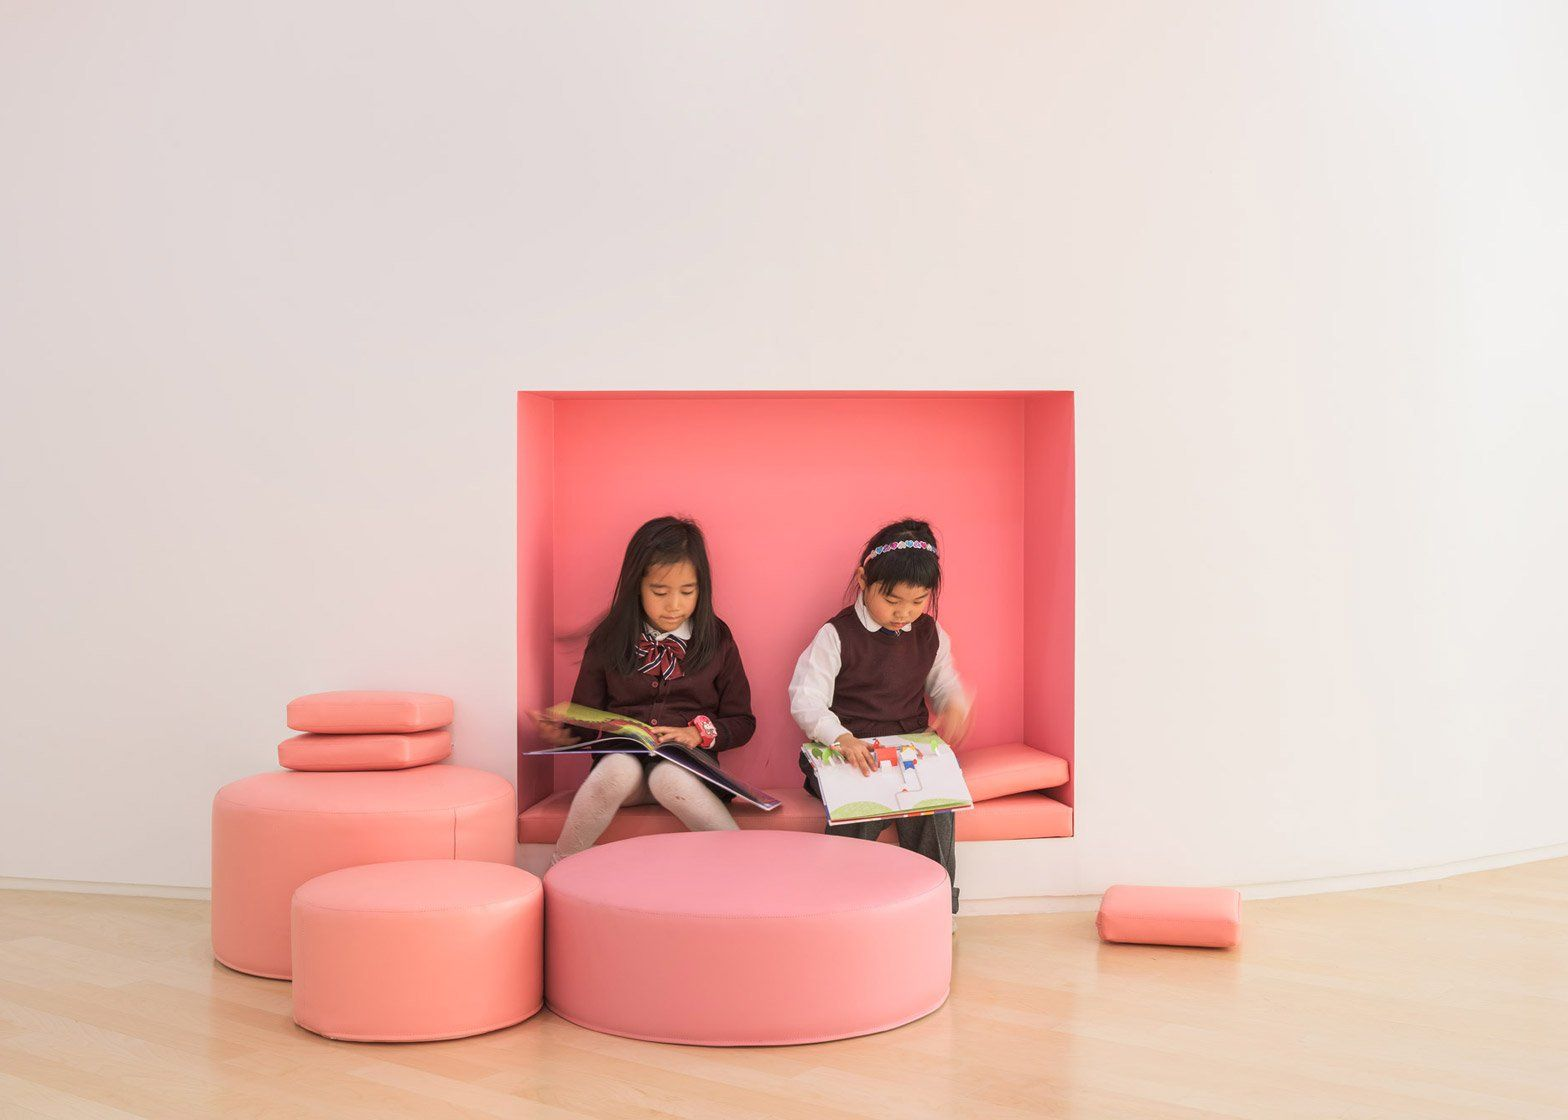 Walls With Built In Flowerpots And A Staircase That Functions As A Play Space Both Feature At This Kindergarten Interior Kindergarten Design Classroom Interior